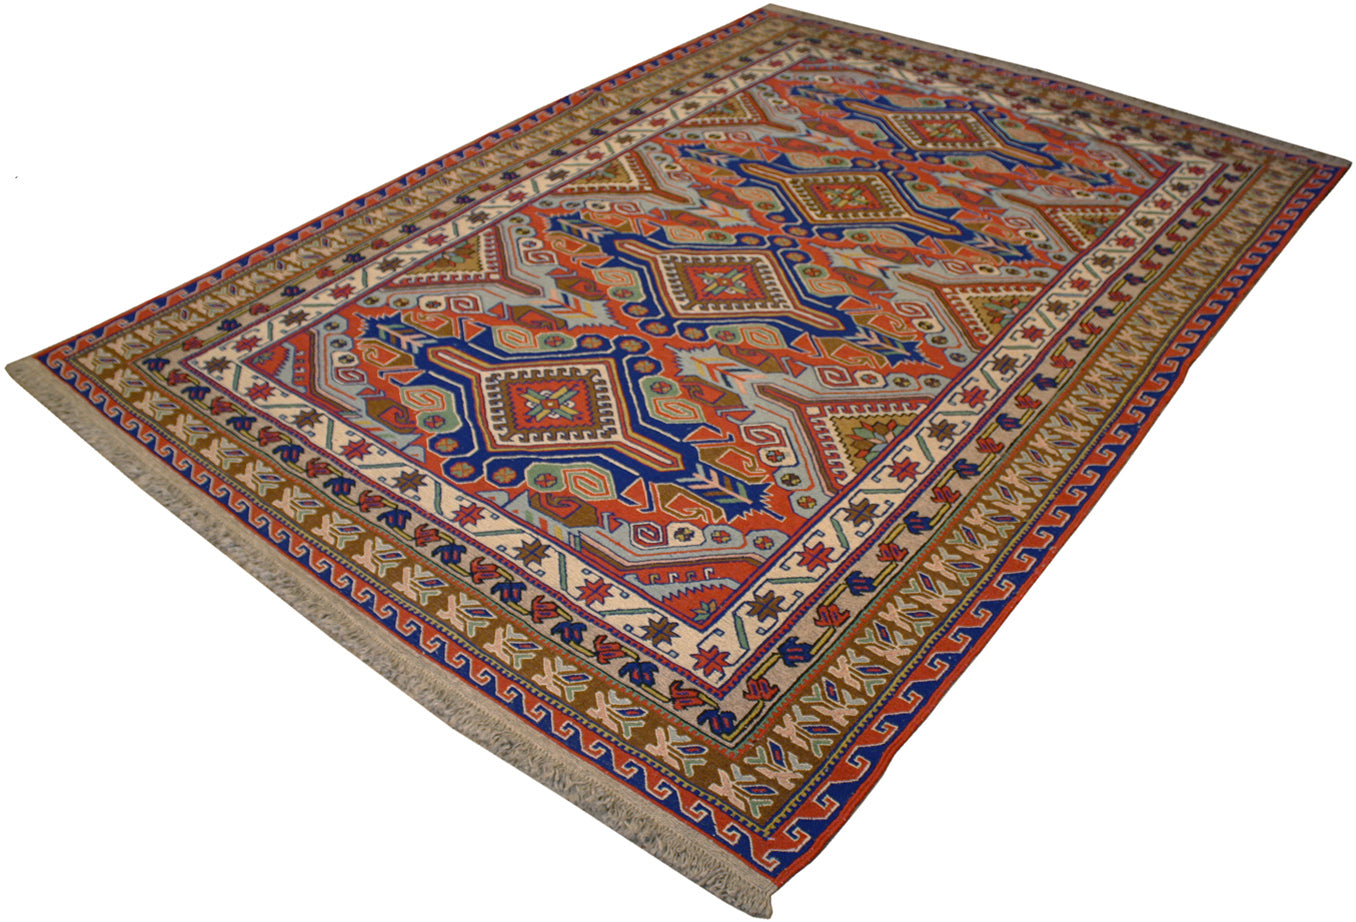 picture new hand rugs fresh woven best safavieh area collection improvement fiber flooring incredible size of large home rug natural square photos